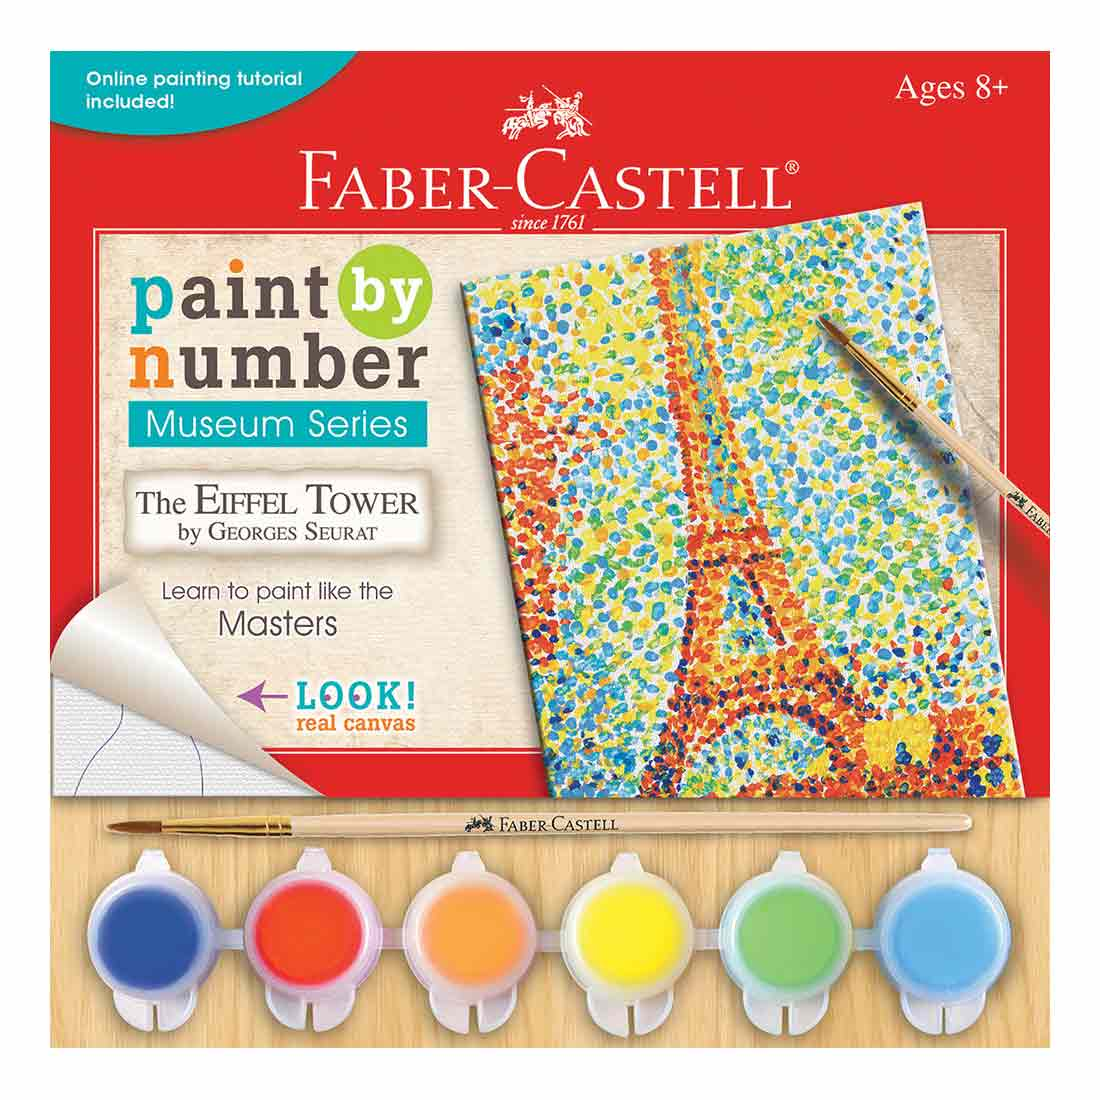 The Eiffel Tower Paint by Number